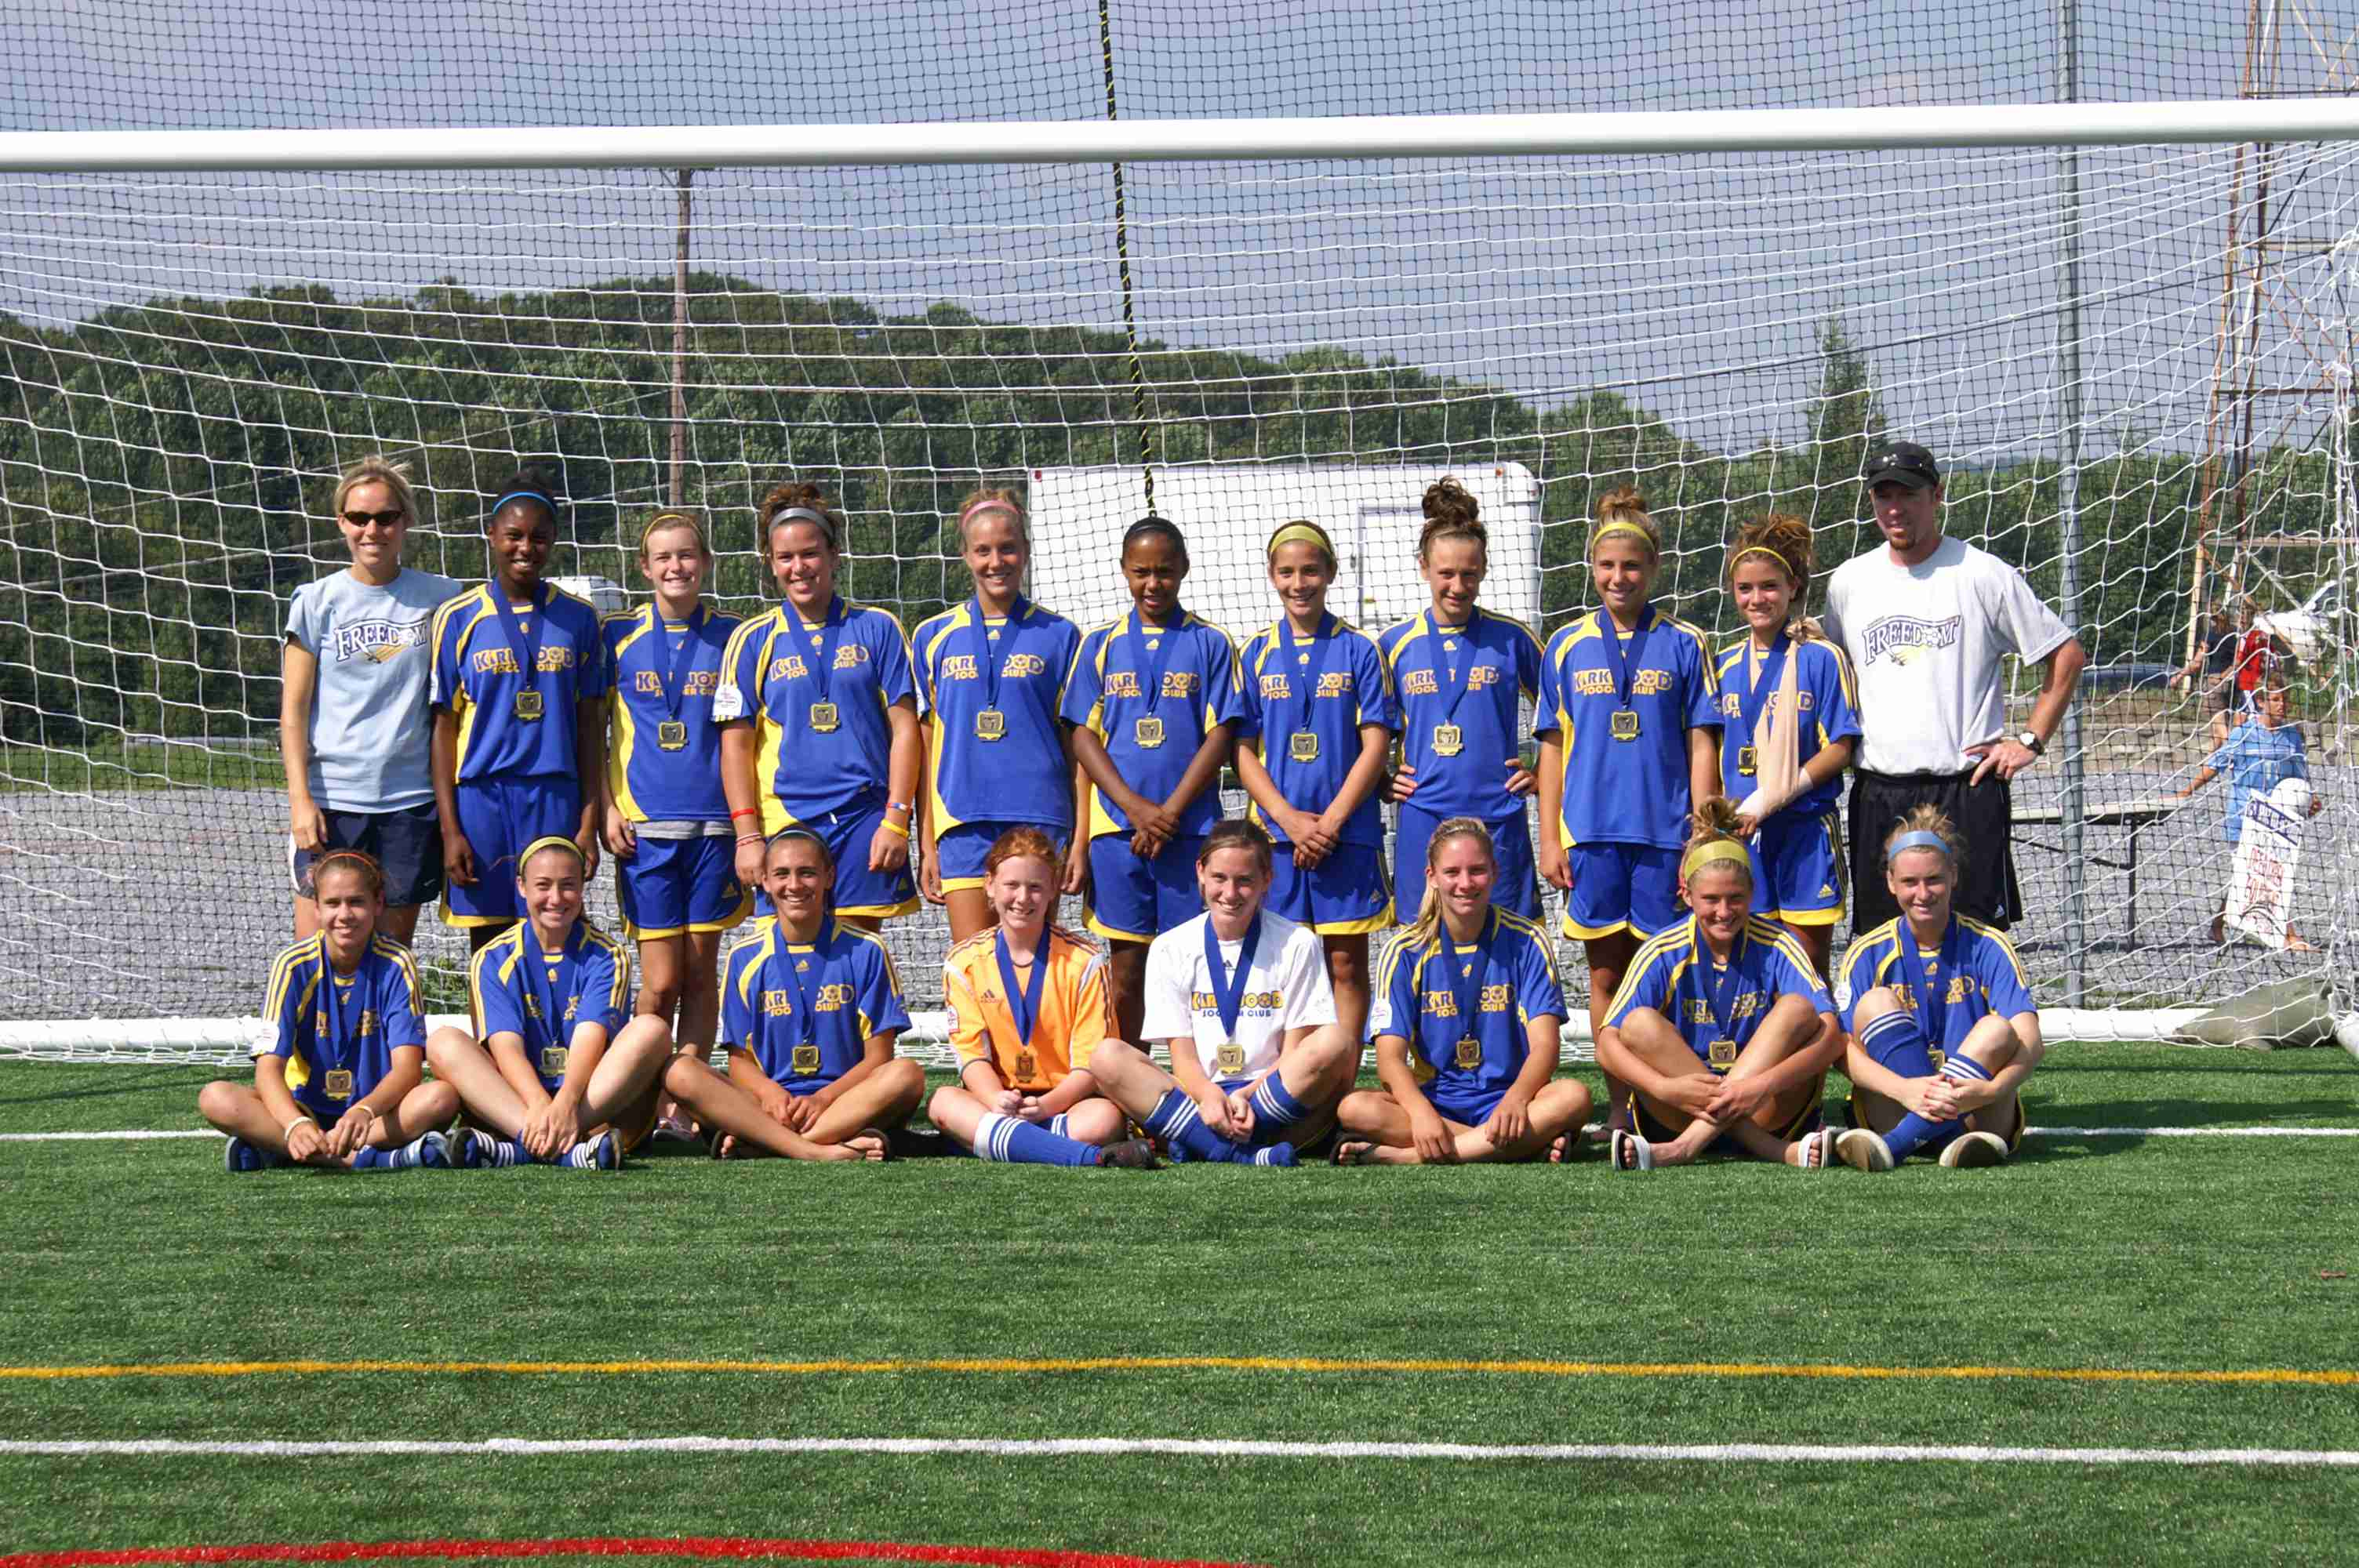 2008 Spirit Kick-off Champions